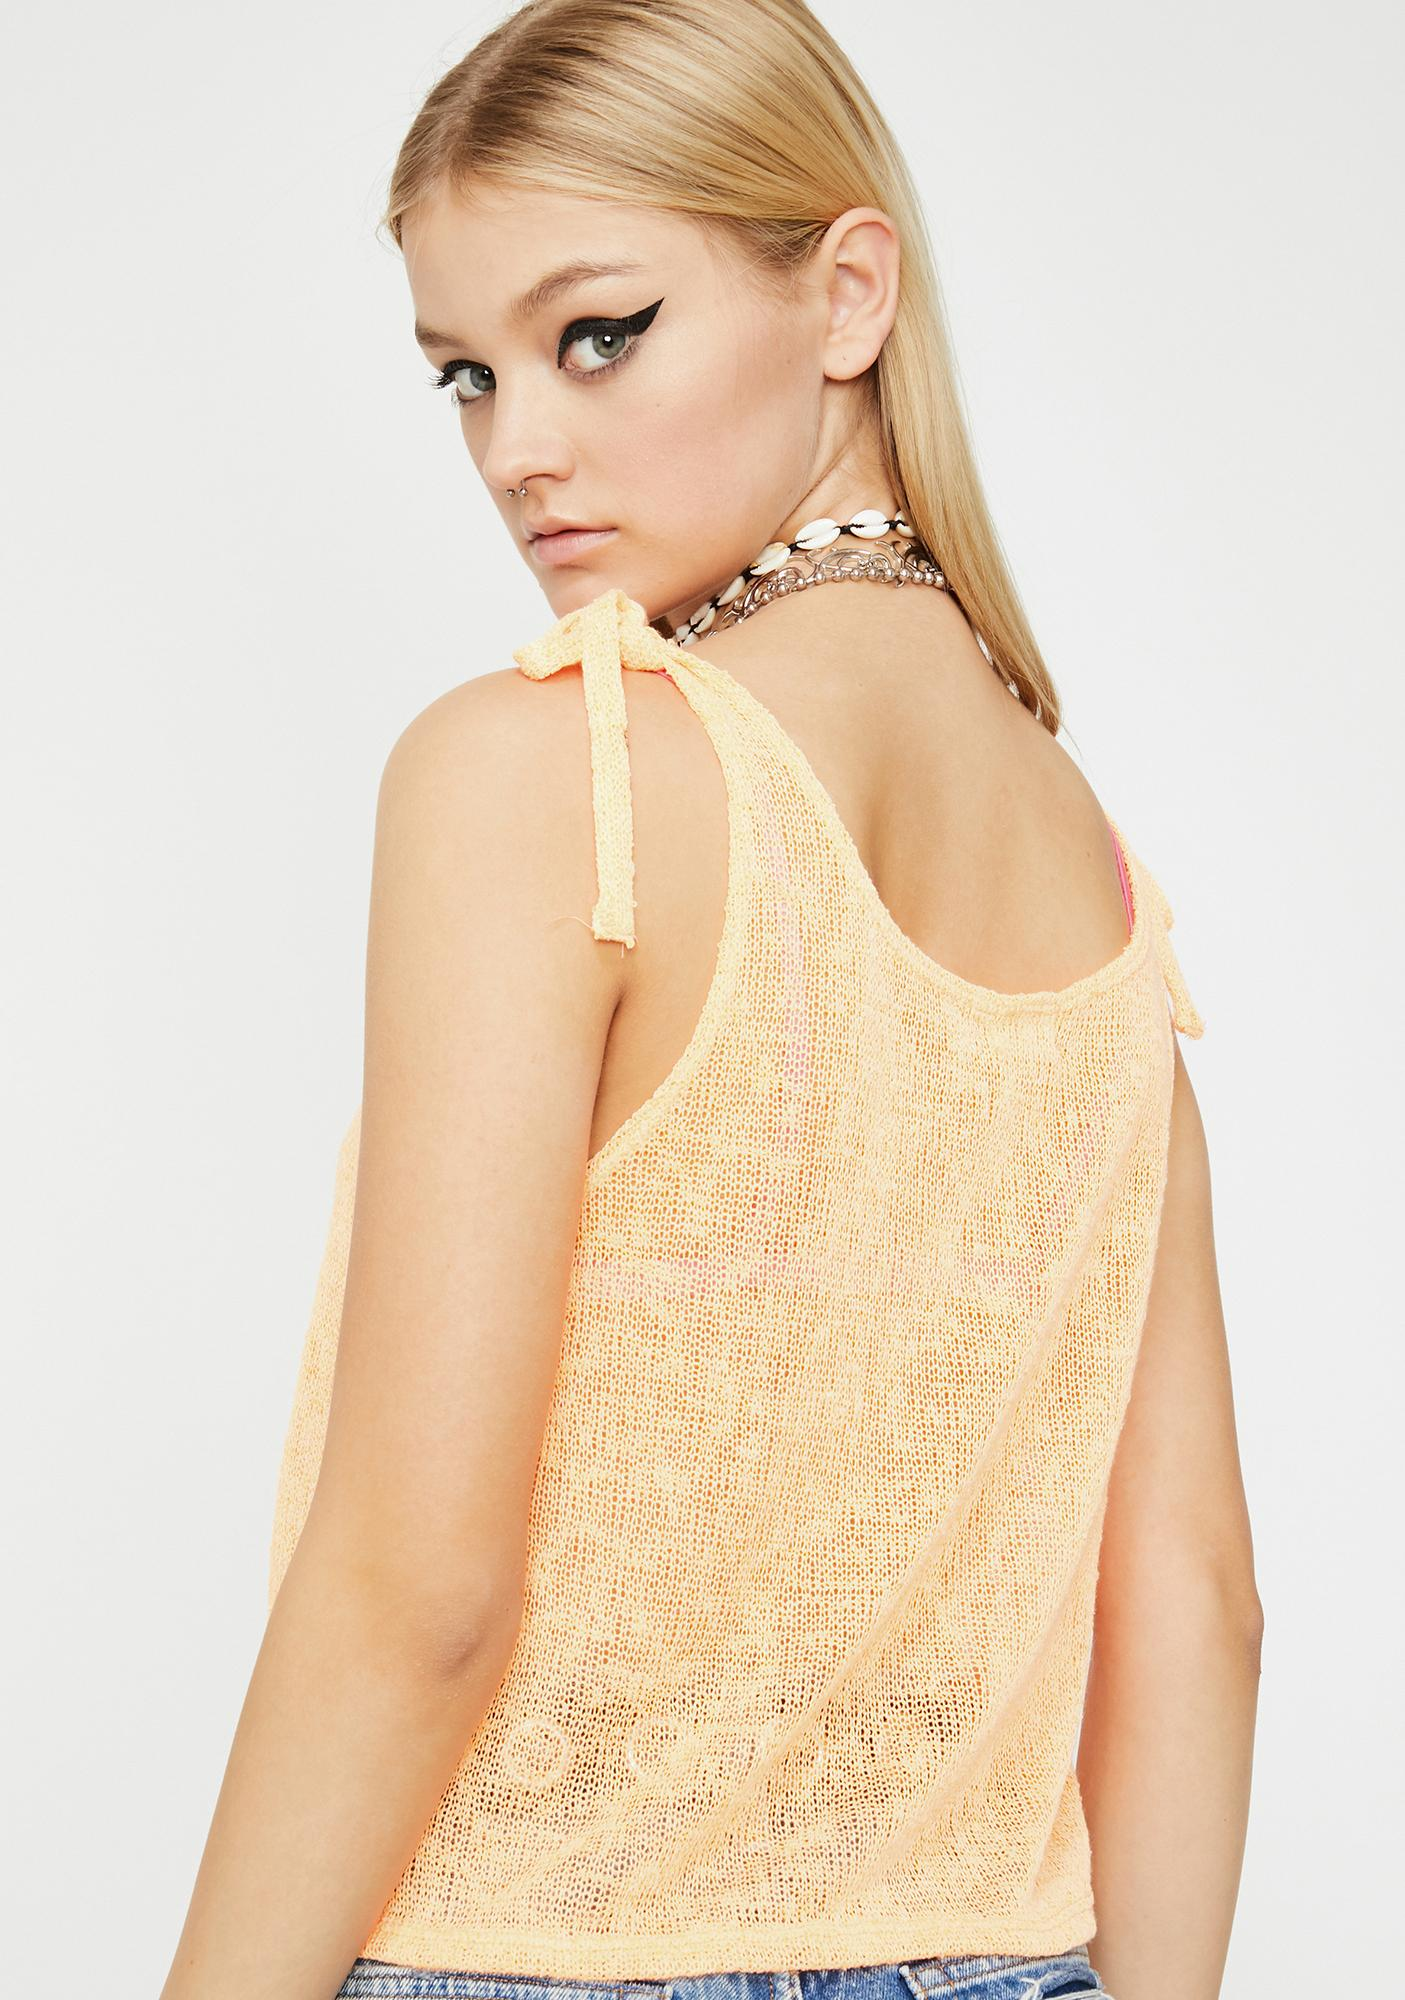 Vibrant Summer Sunset Knit Tank